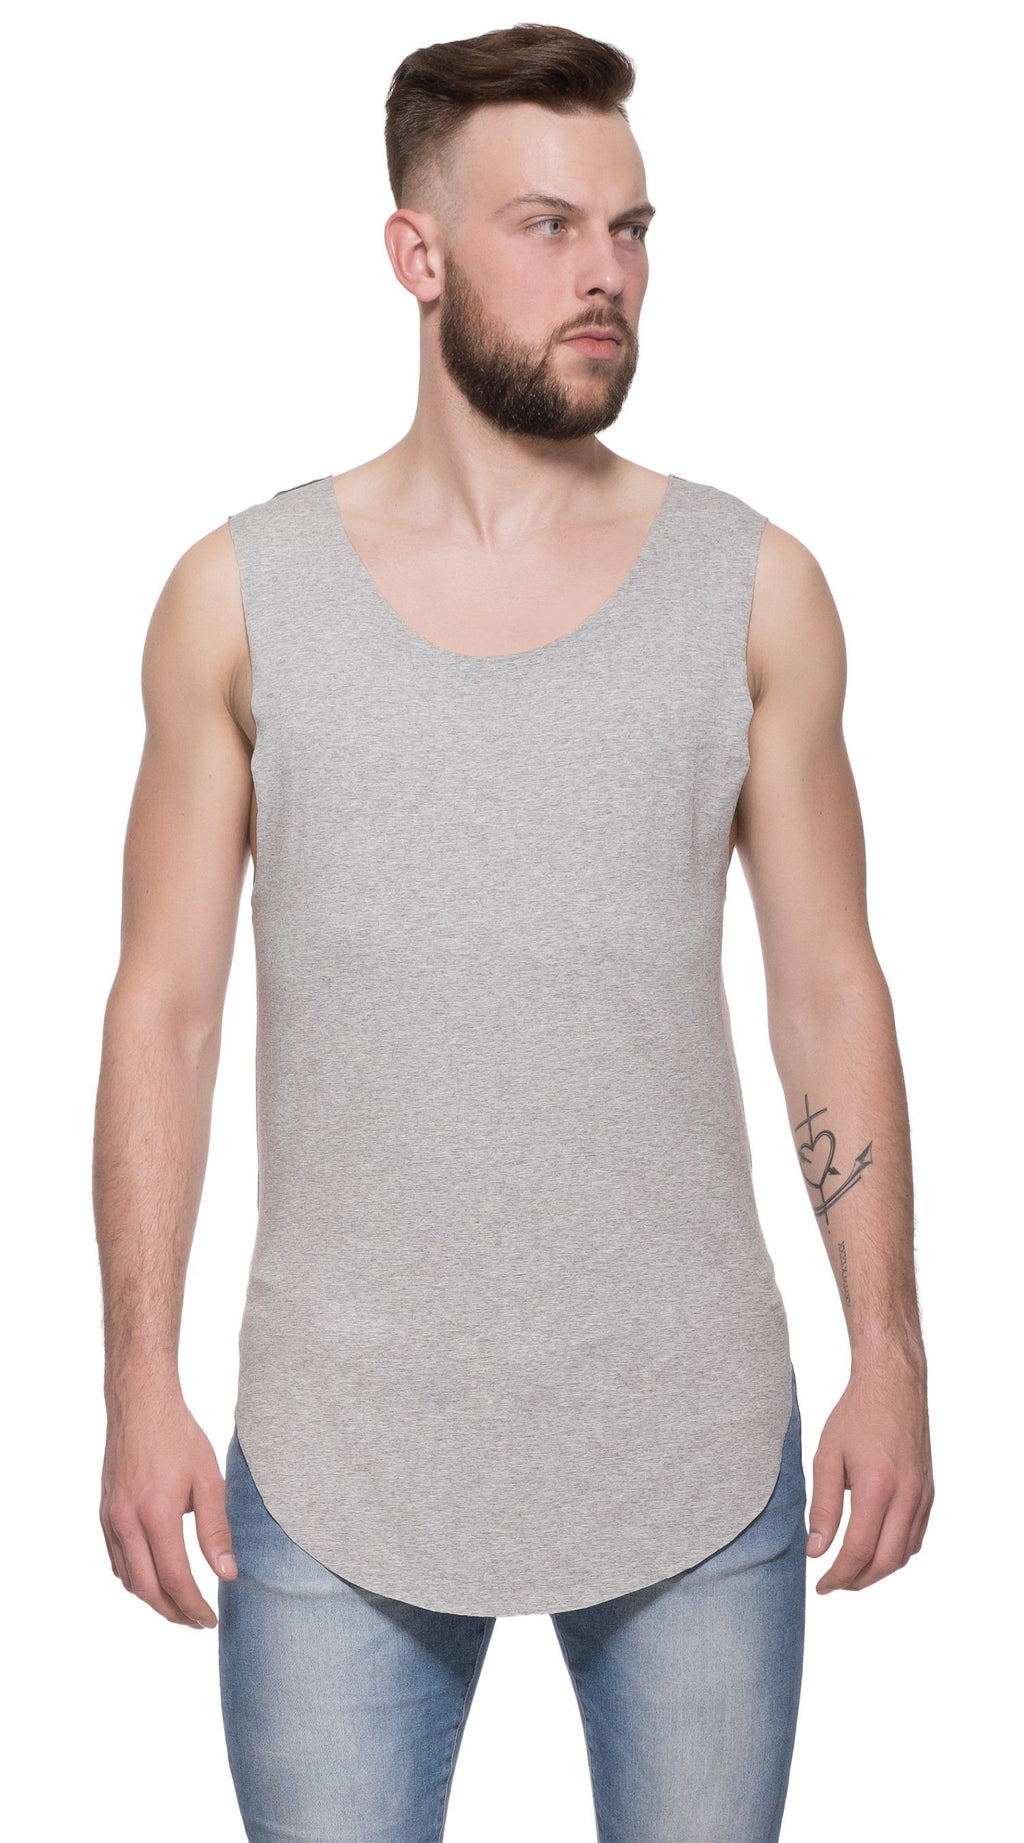 TheG Man Viscose Long Tank // grey